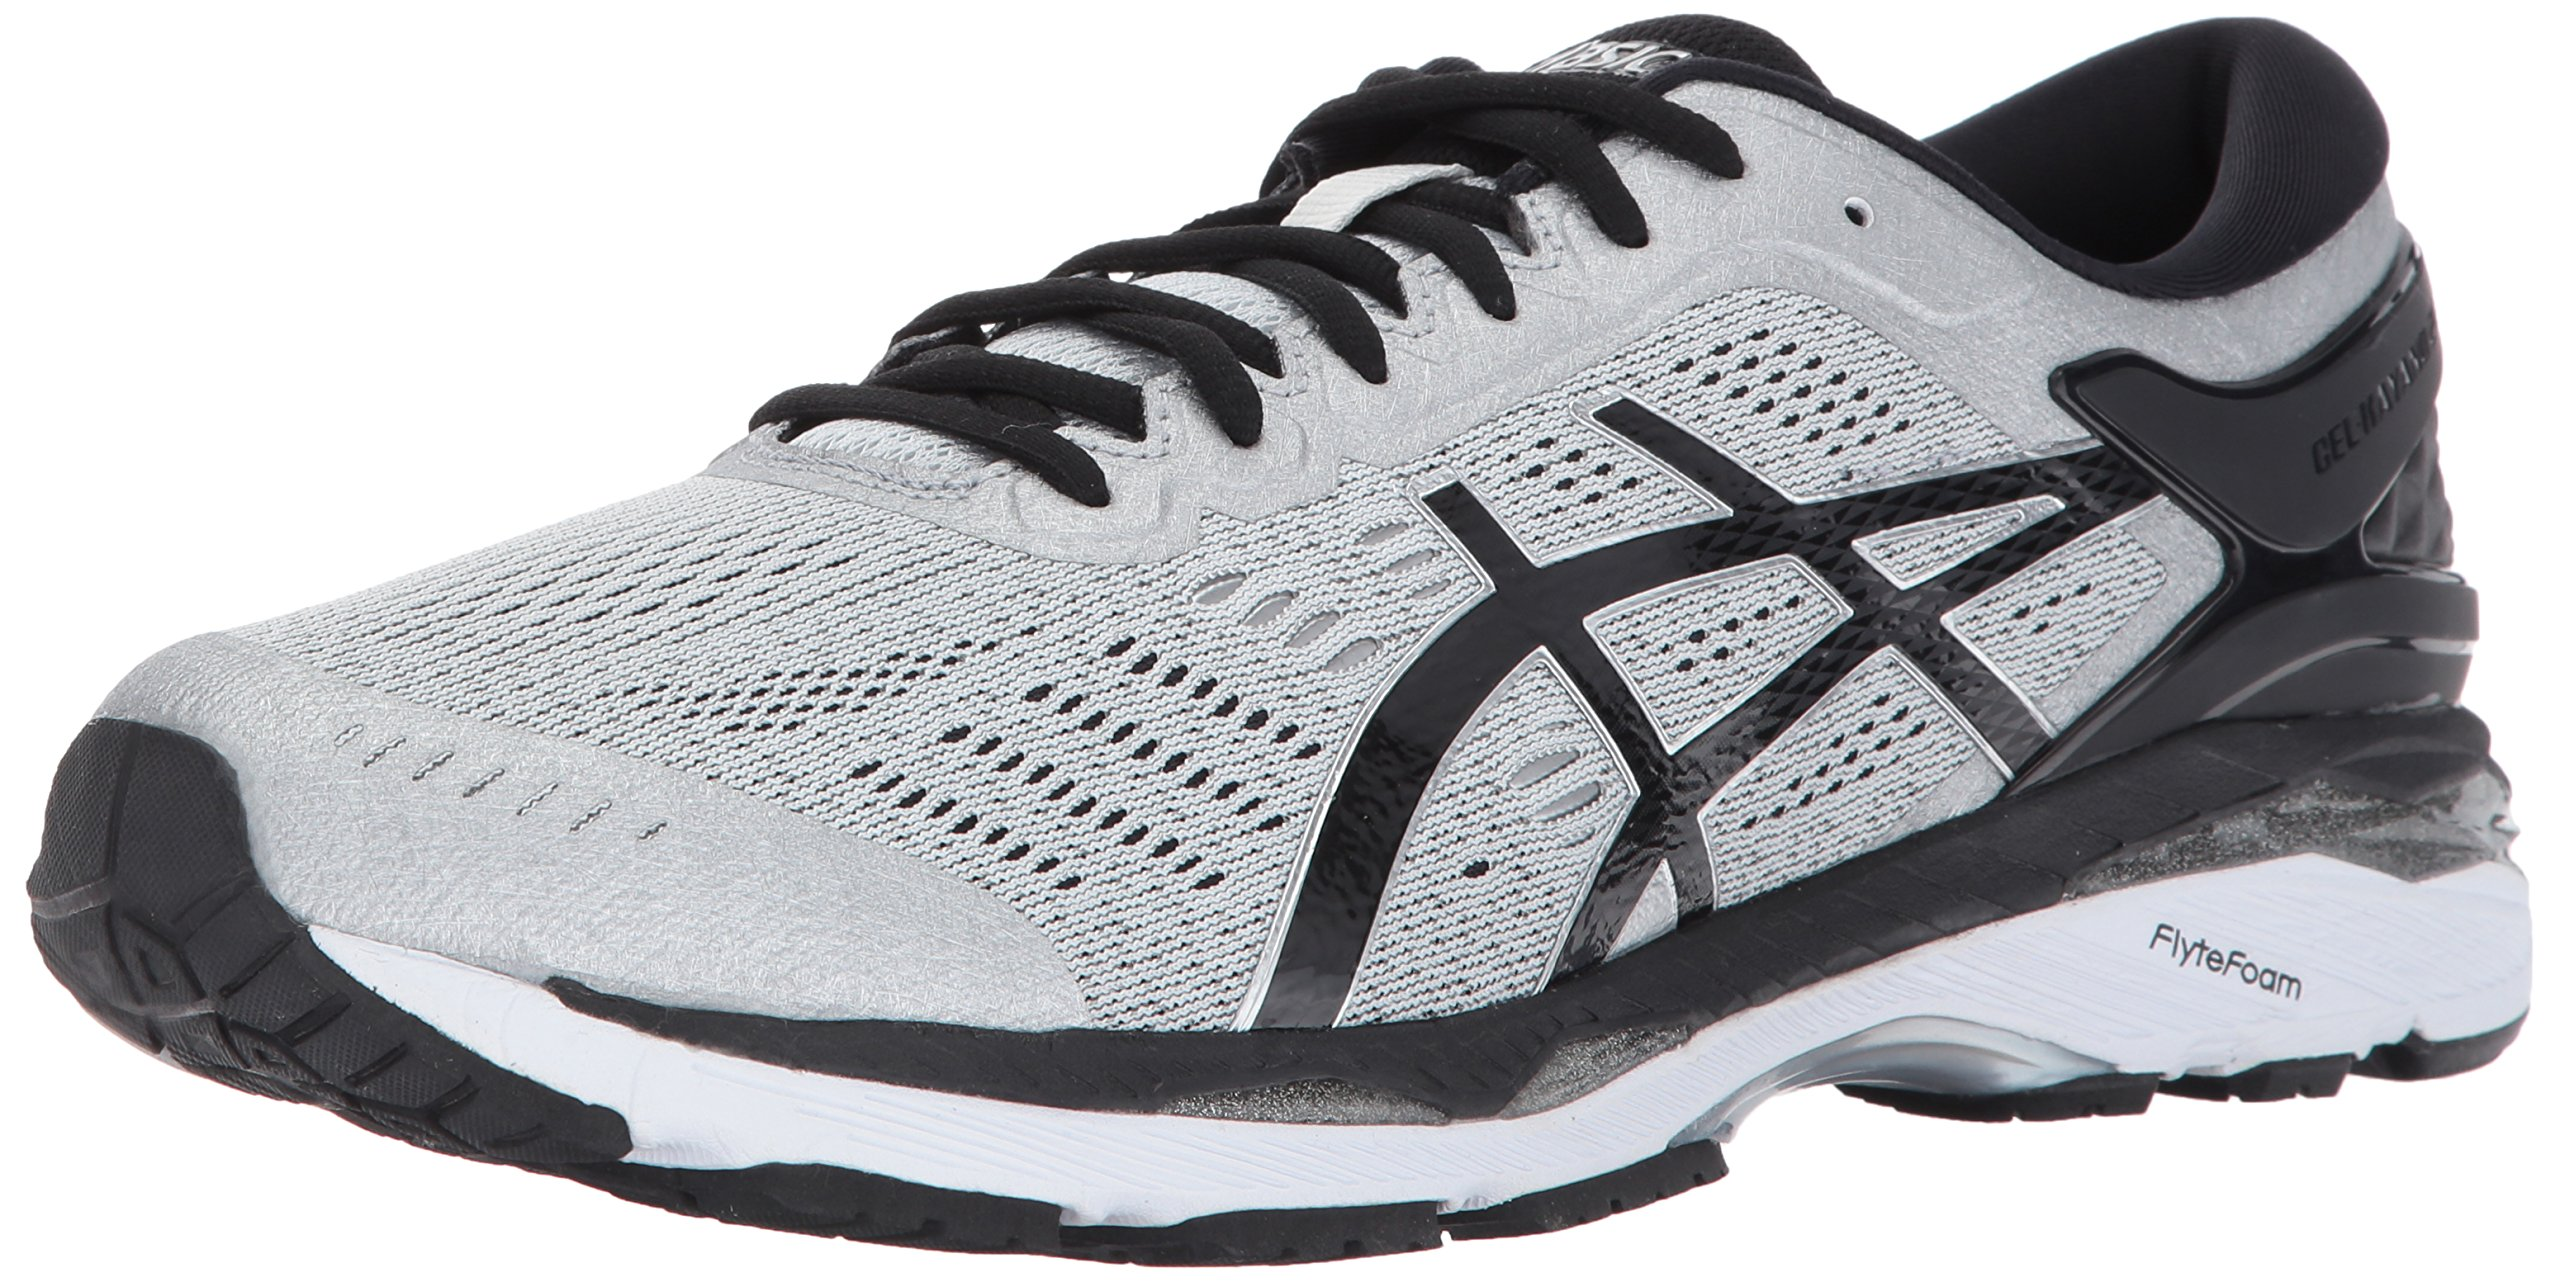 ASICS Men's Gel-Kayano 24 Running Shoe, Silver/Black/Mid Grey, 11.5 Medium US